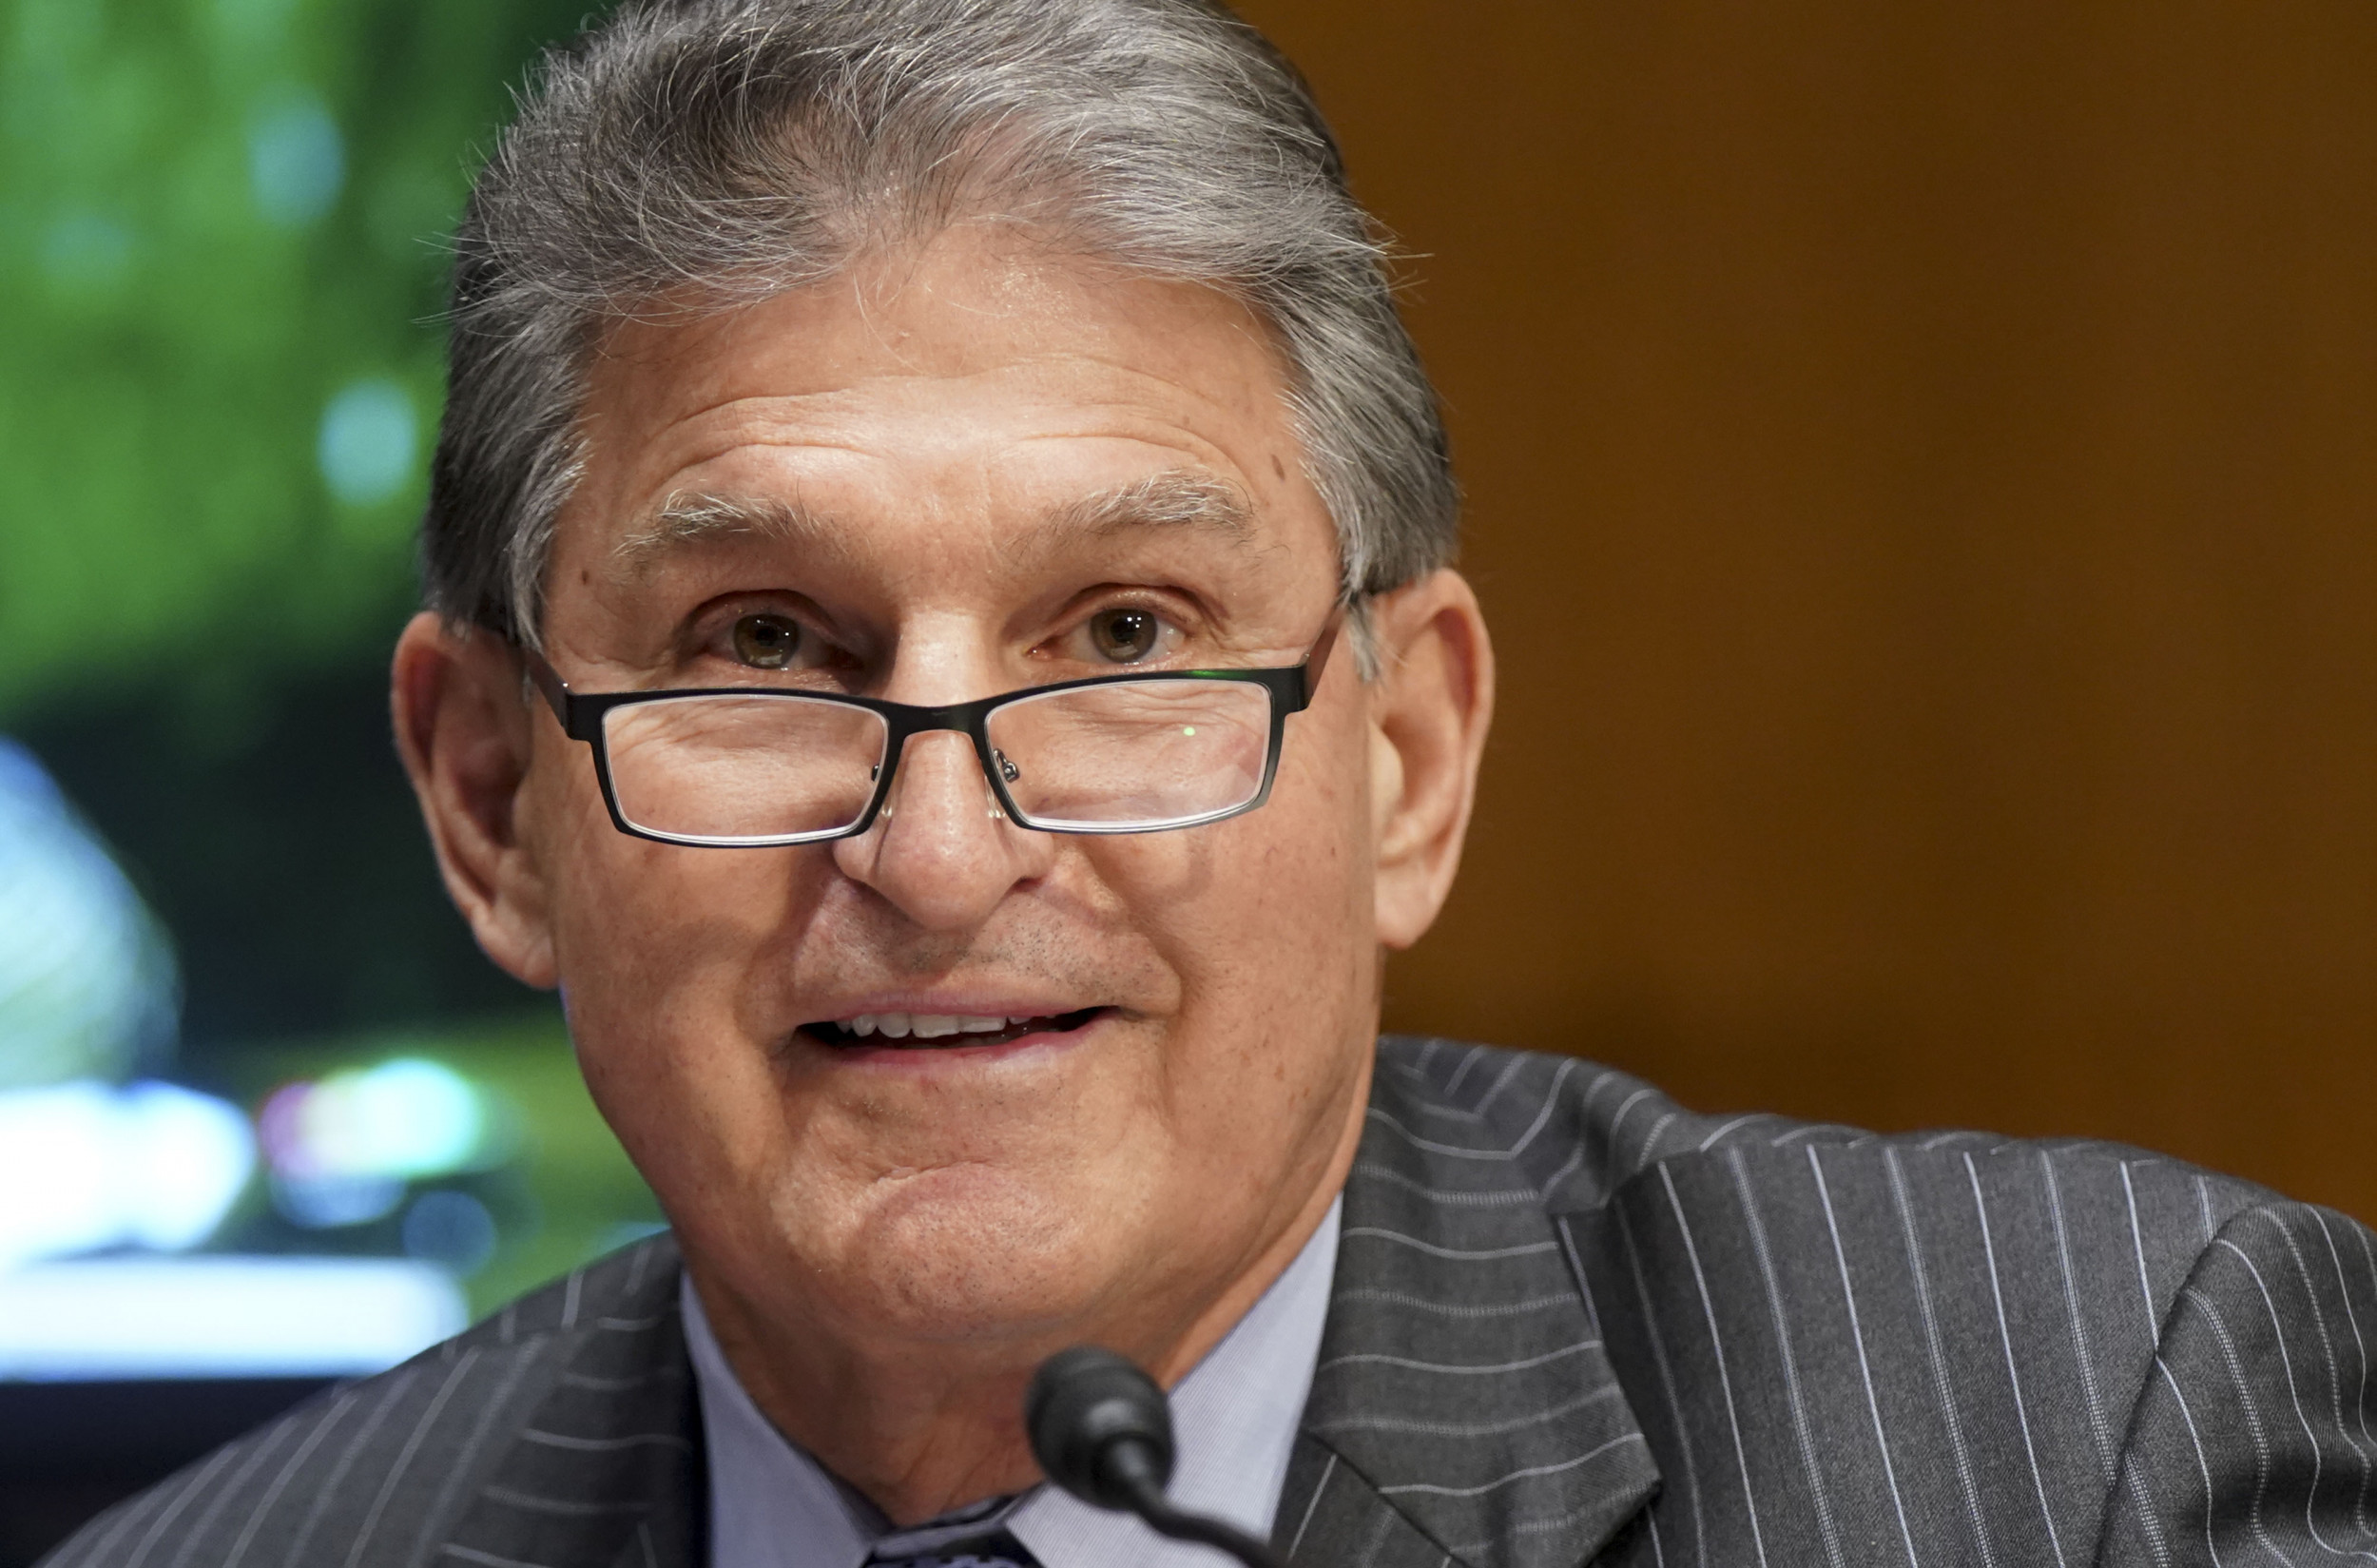 Joe Manchin insists he doesn't like being most powerful senator as he appears on 4 Sunday shows